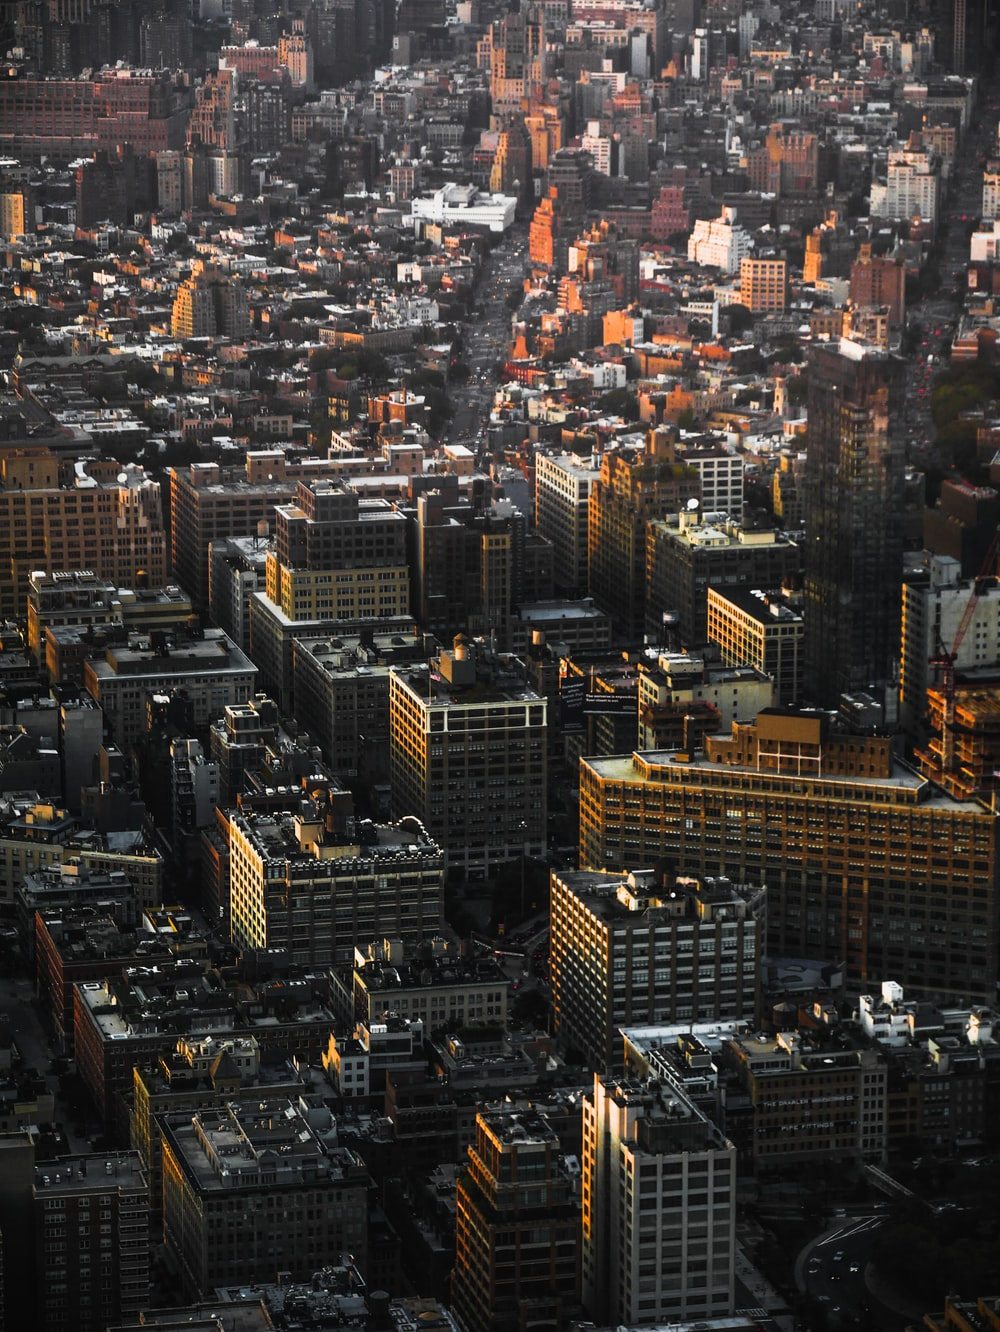 aerial view of concrete buildings